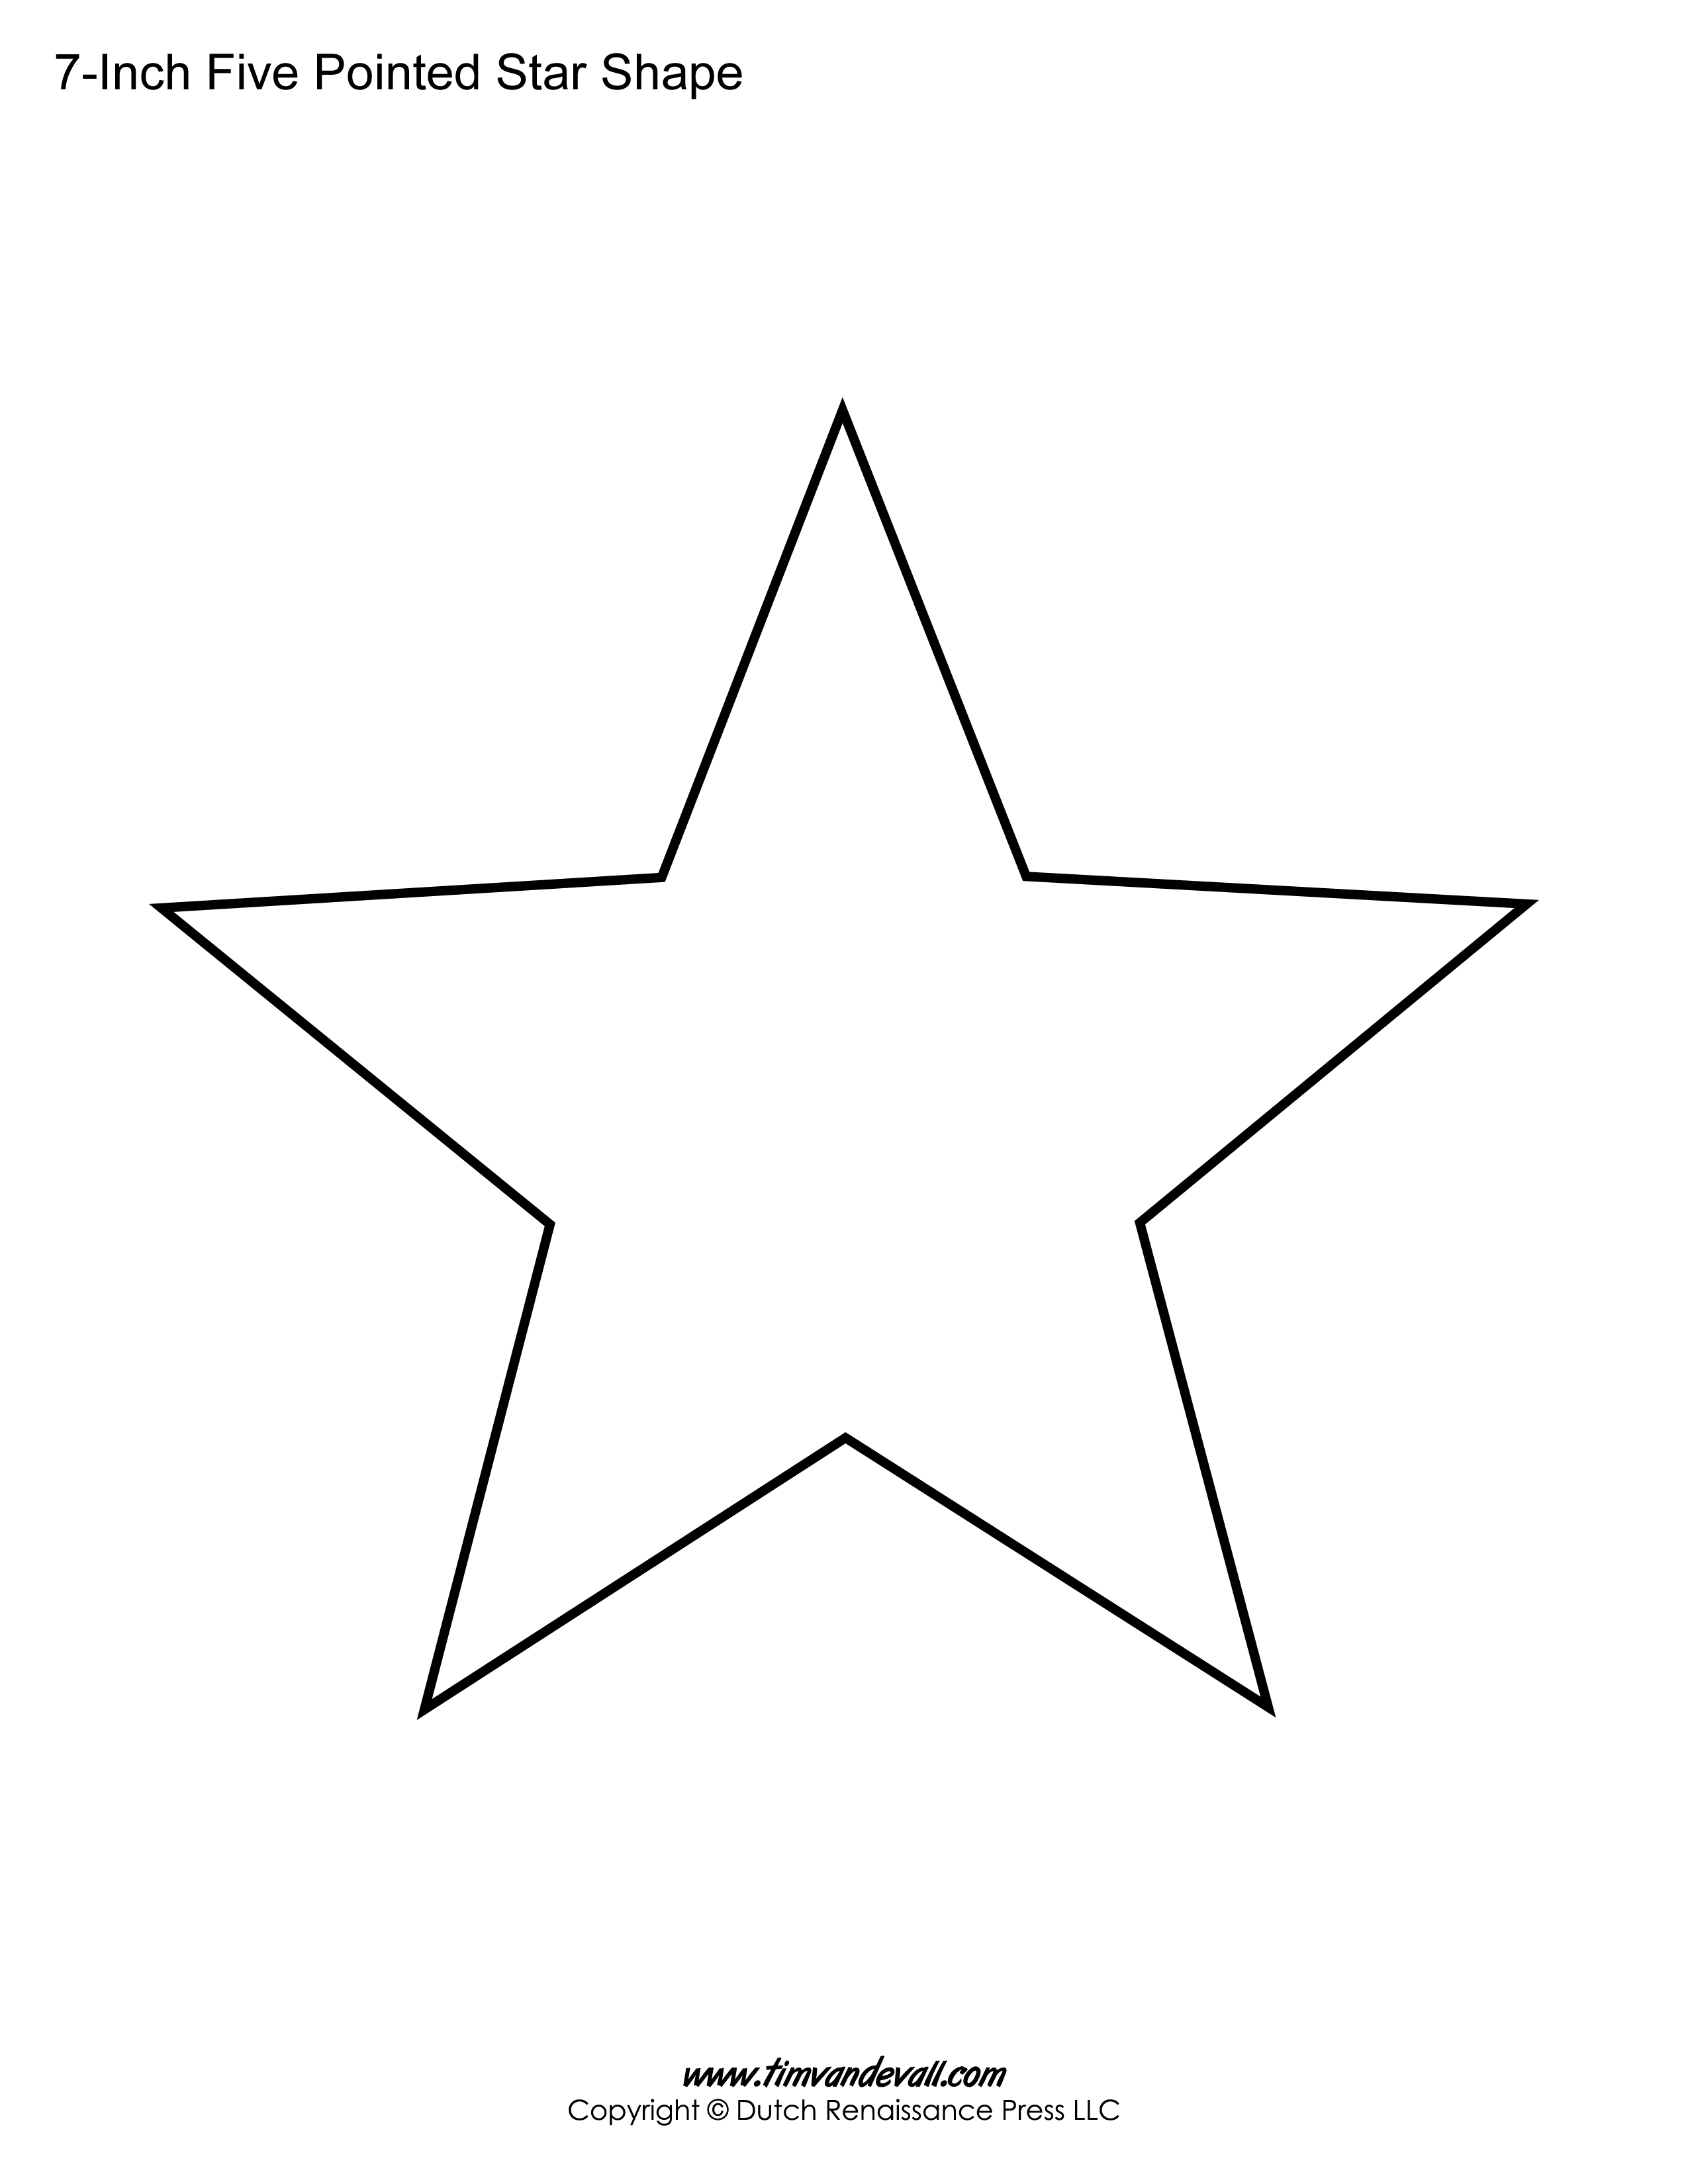 Printable Five Pointed Star Templates Blank Shape S